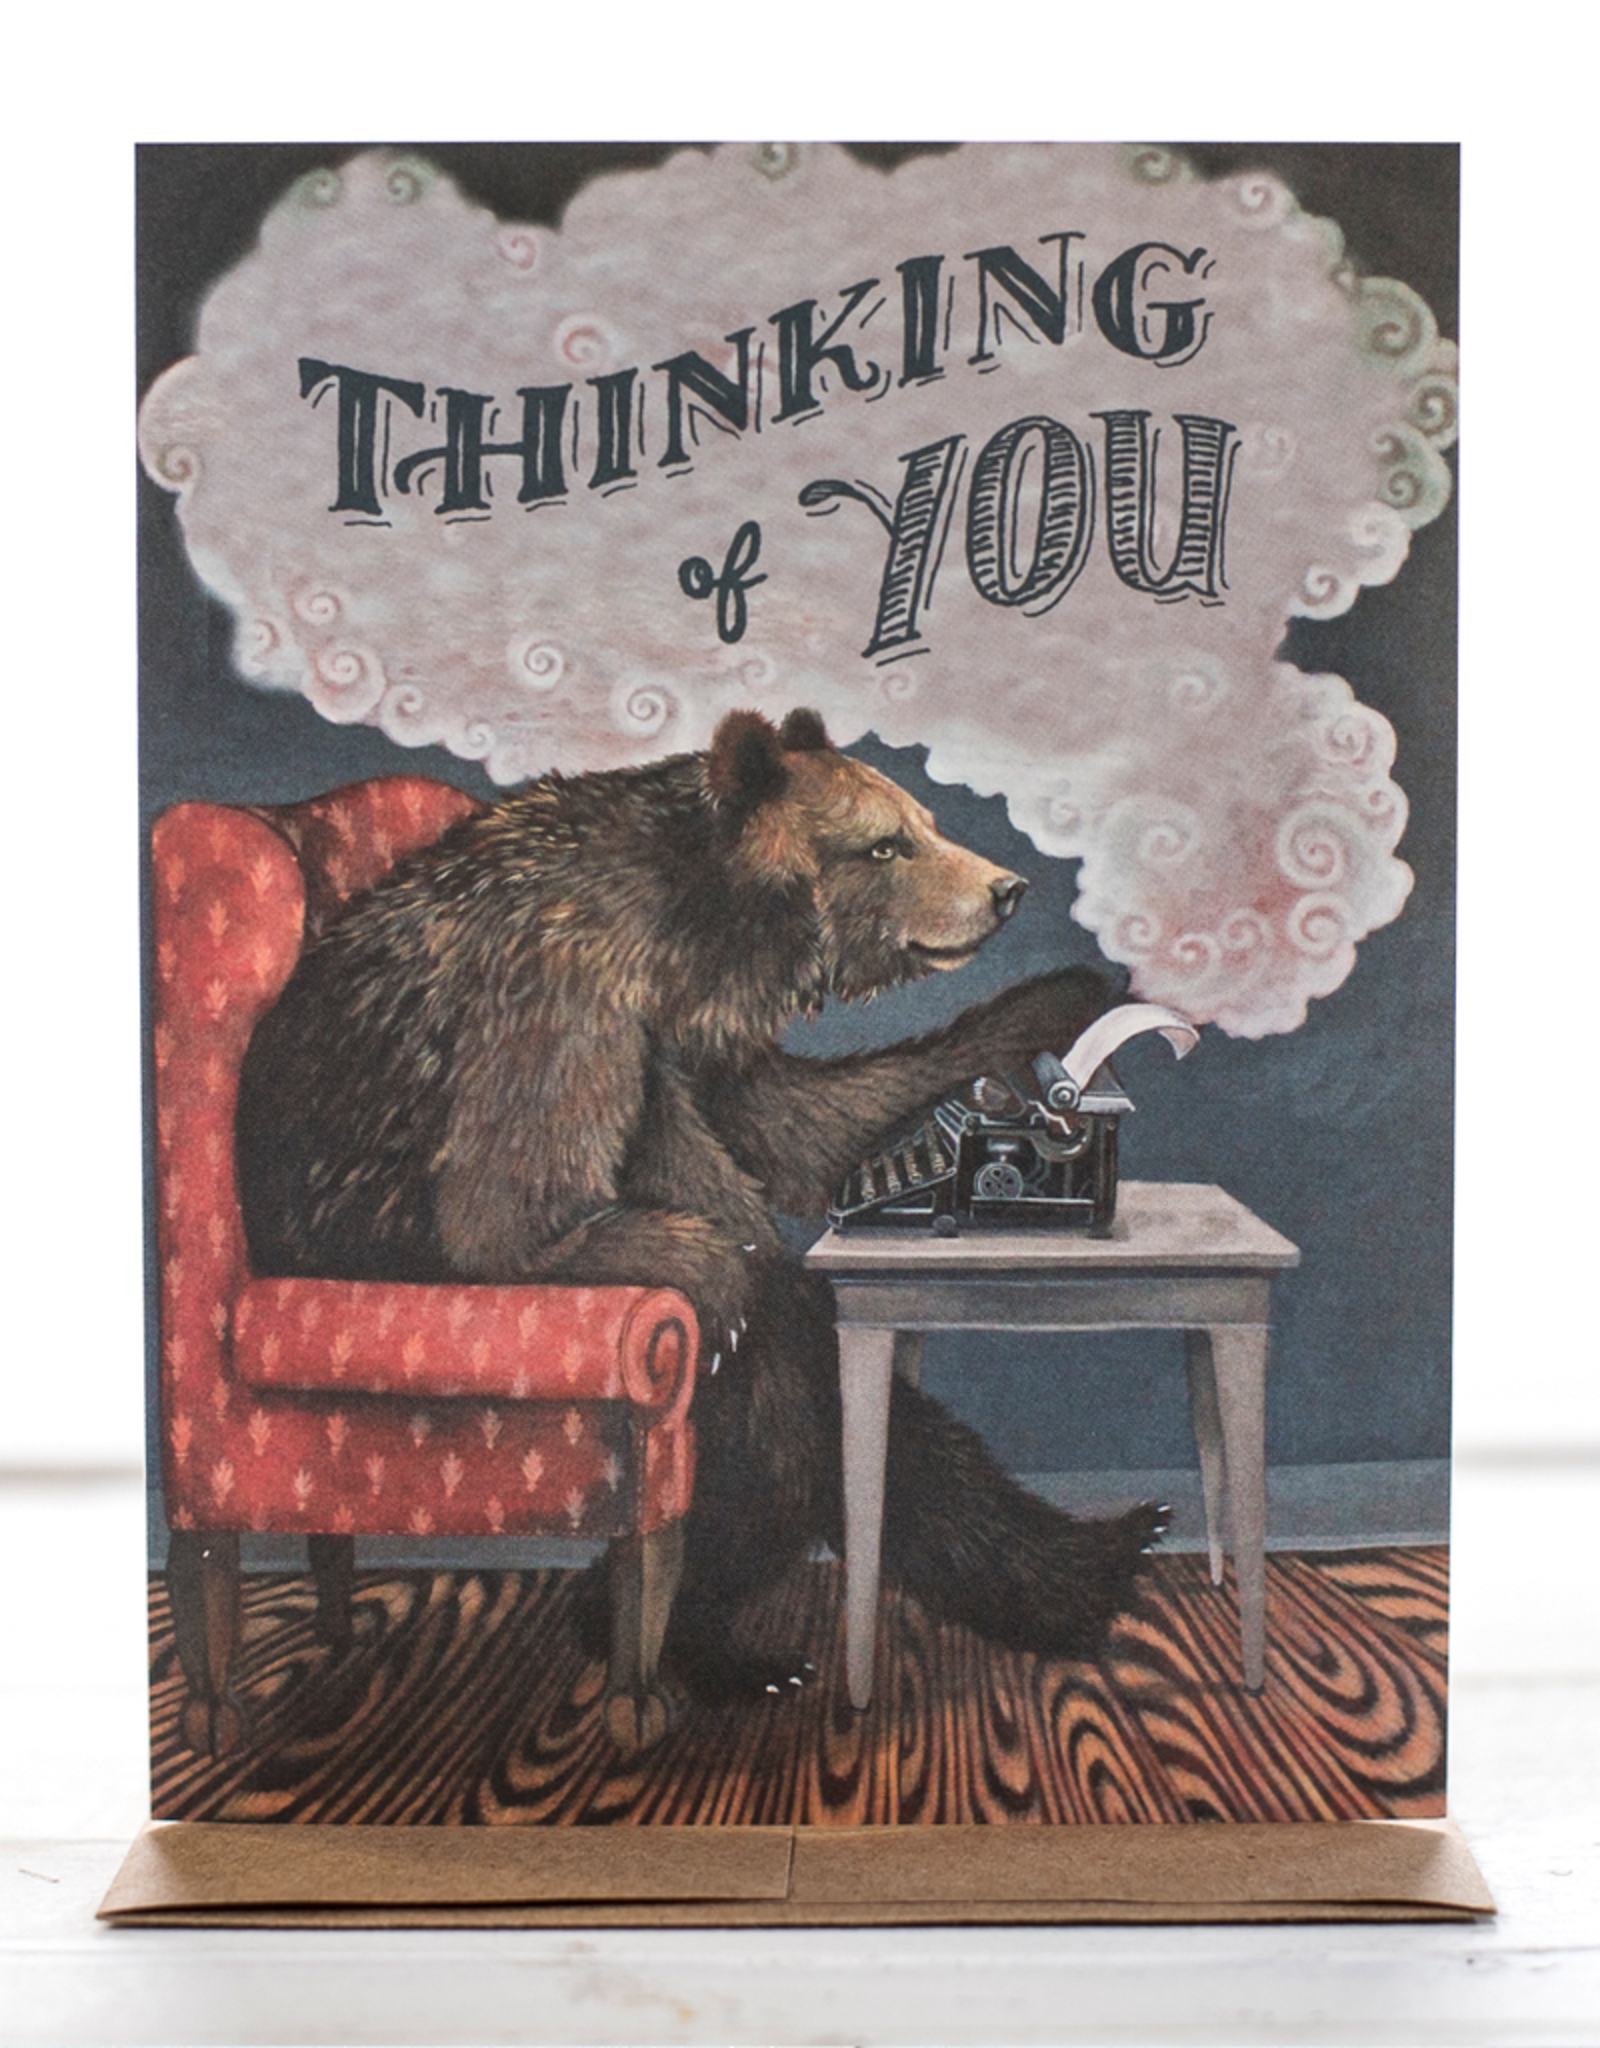 New Card - Thinking Of You